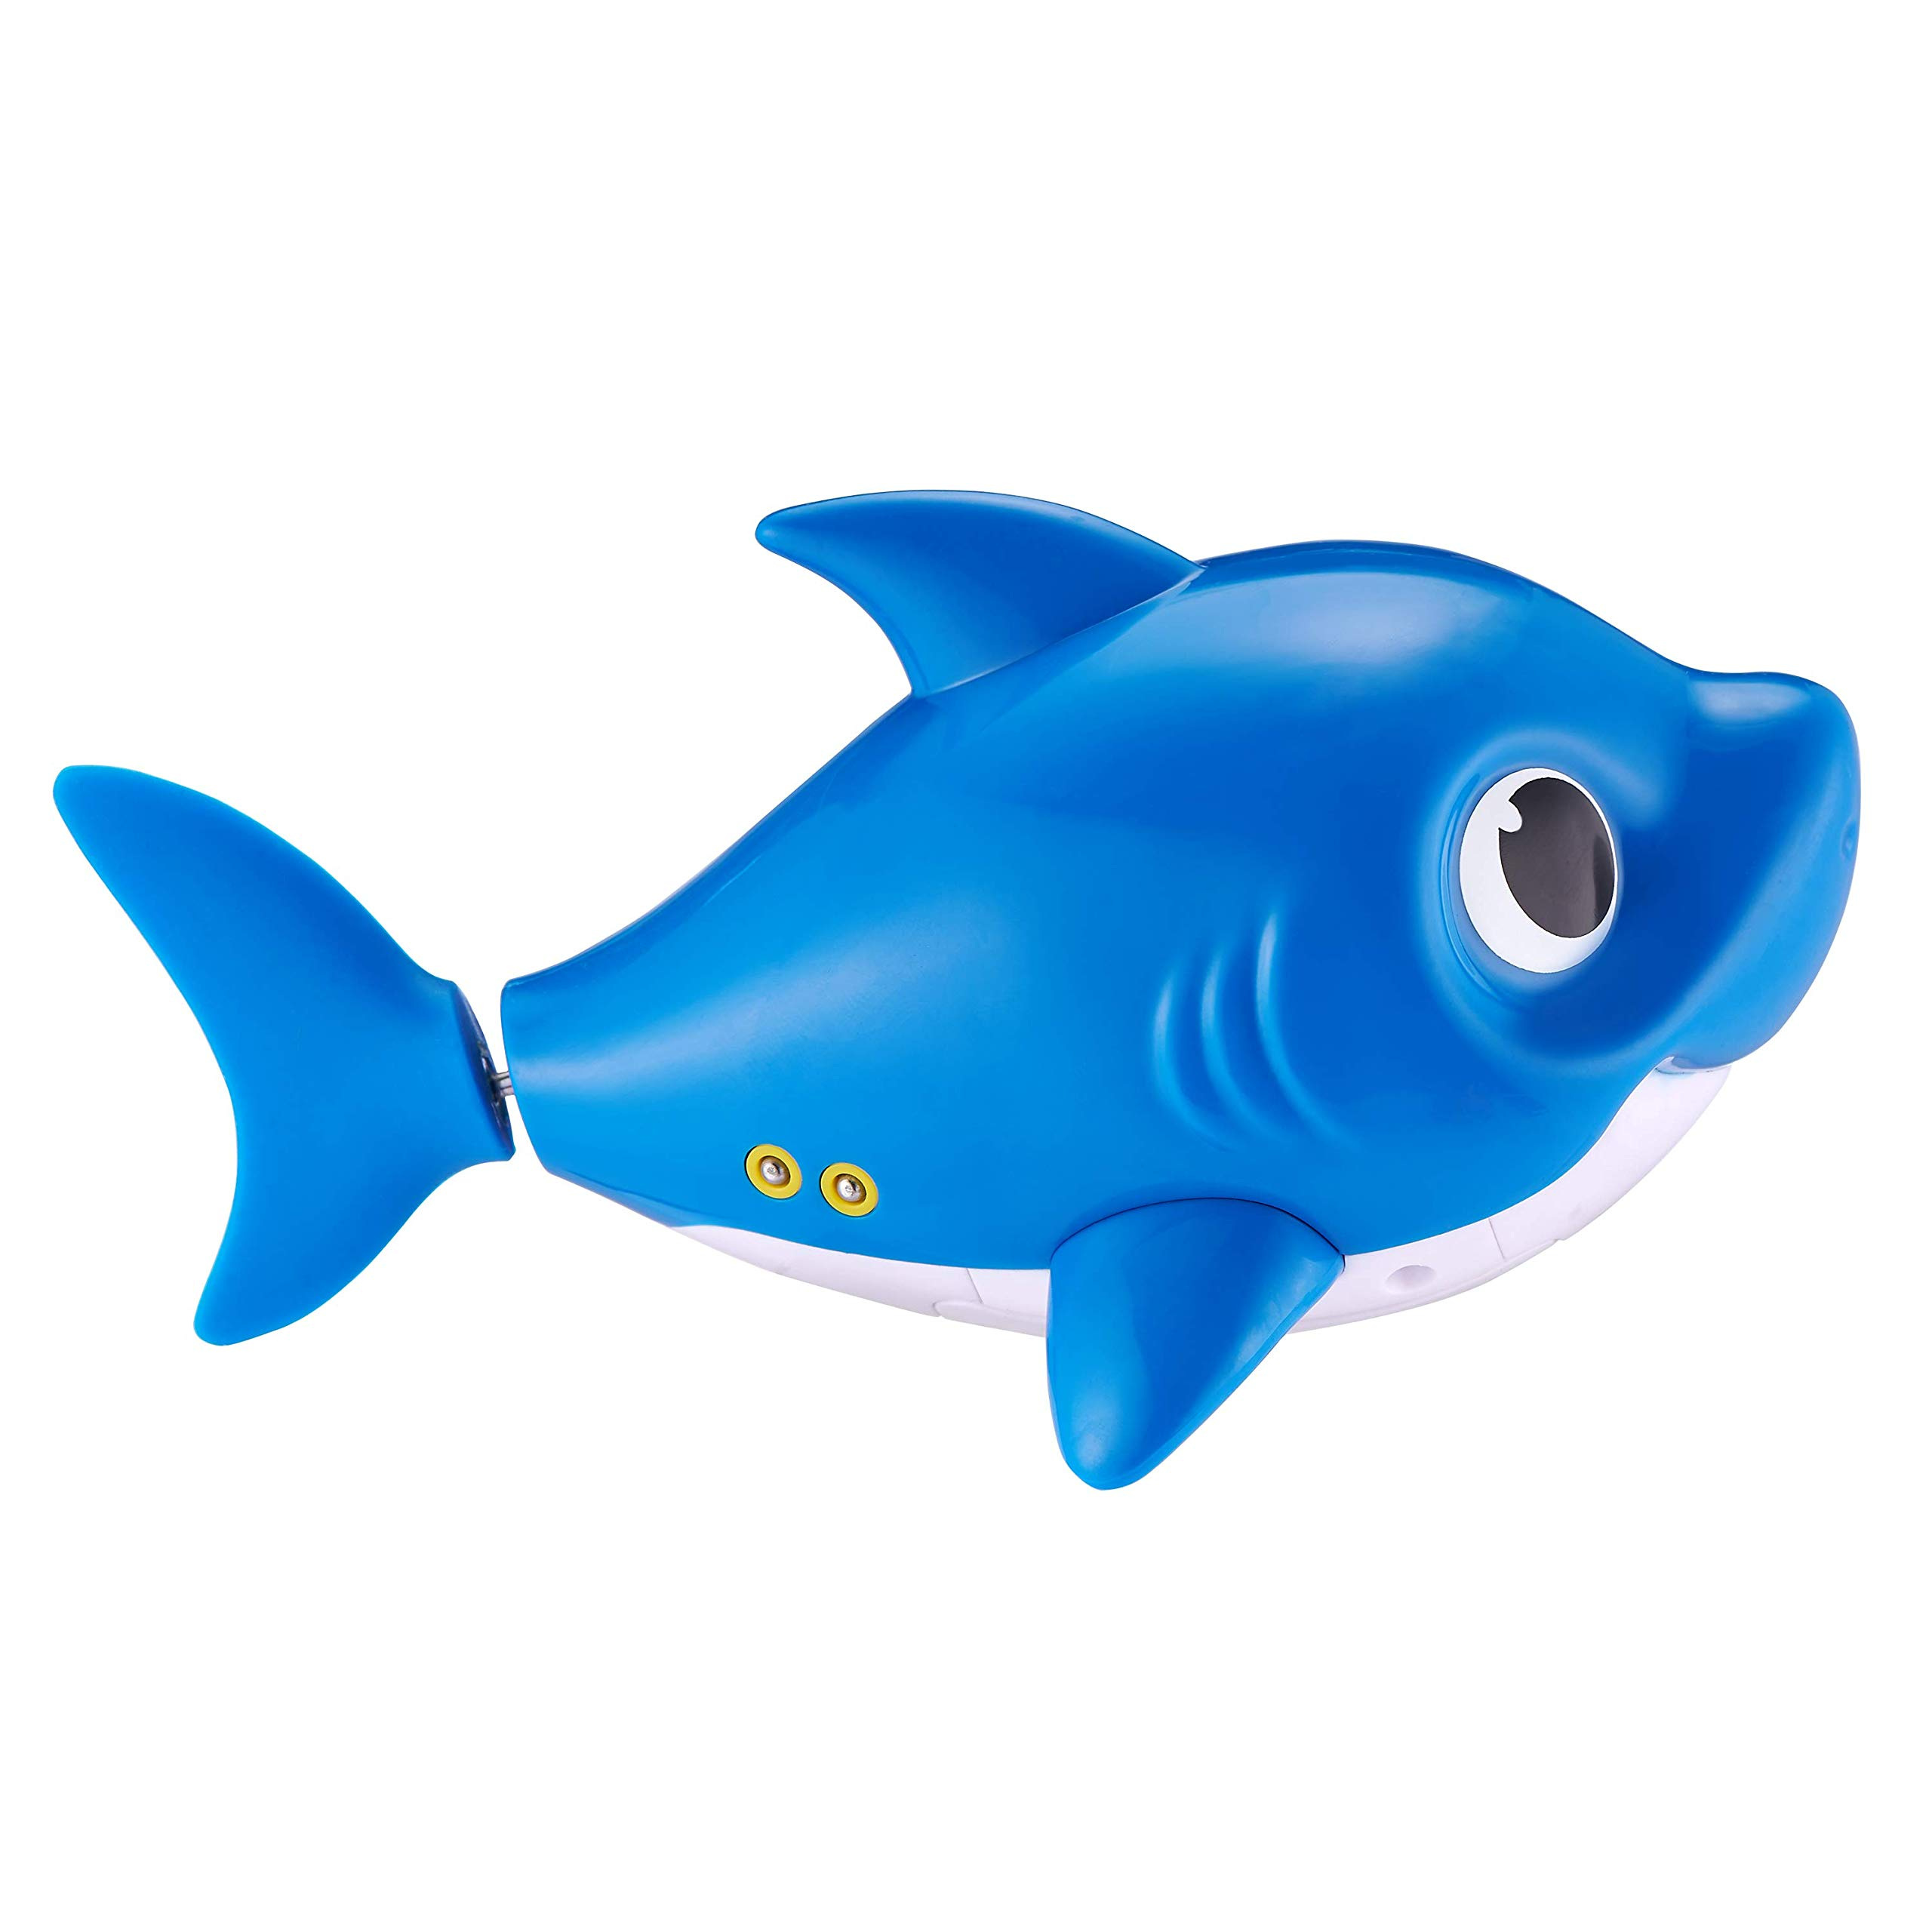 Robo Alive Junior Baby Shark Battery-Powered Sing and Swim Bath Toy by ZURU - Daddy Shark (Blue) by Robo Alive Junior (Image #4)